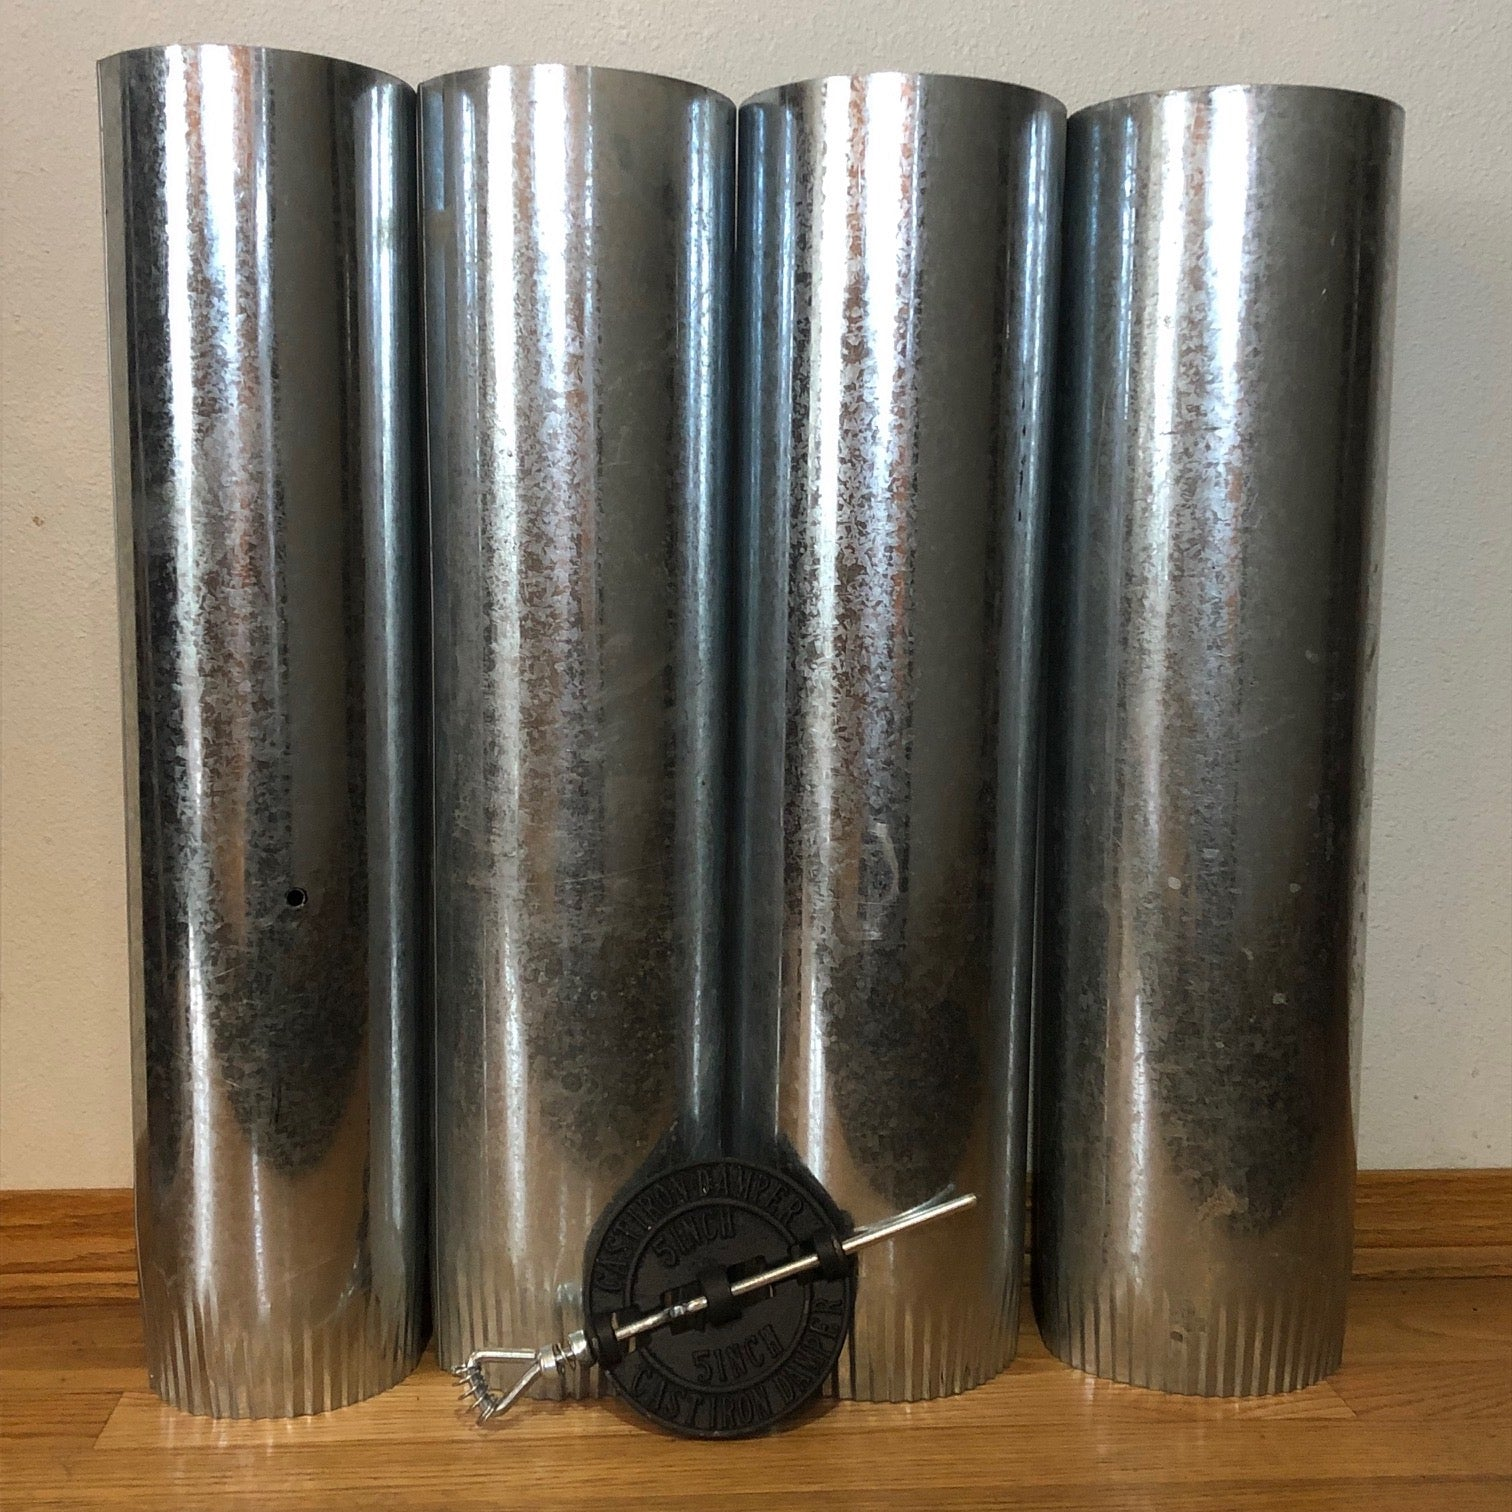 Damper And Pipe